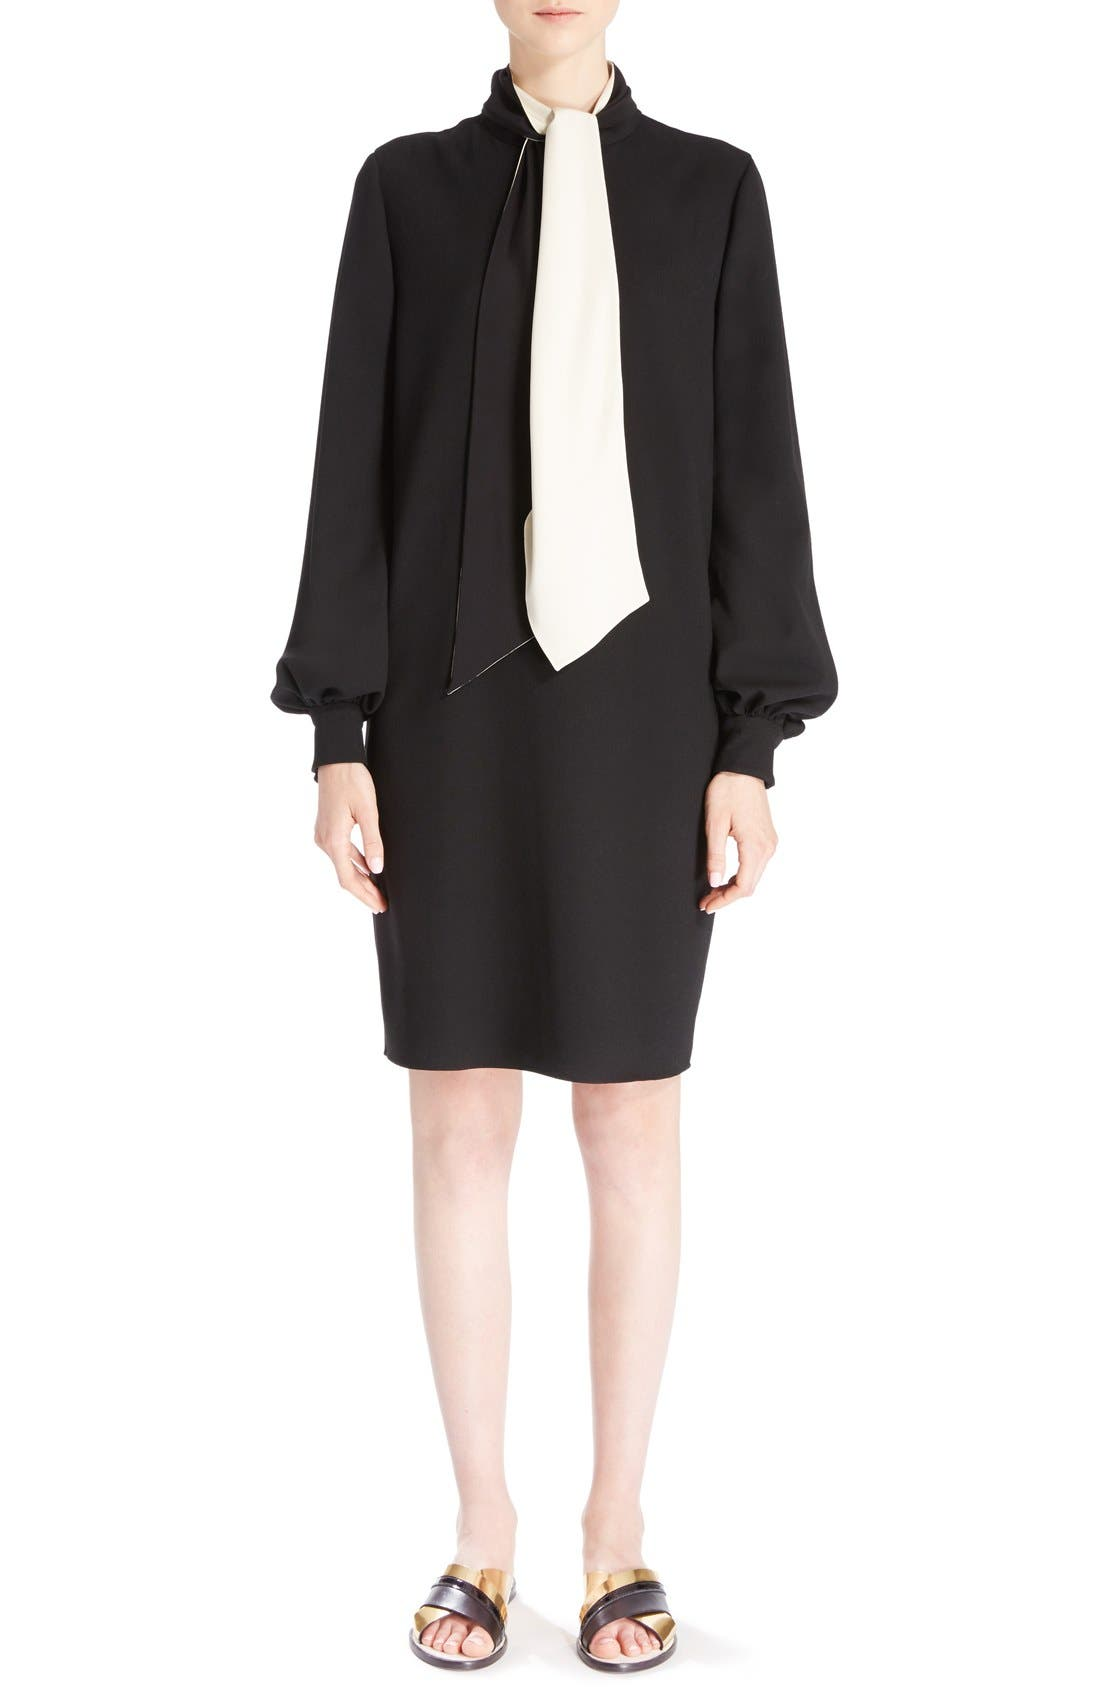 Main Image - Lanvin Wool Crepe Dress with Detachable Scarf